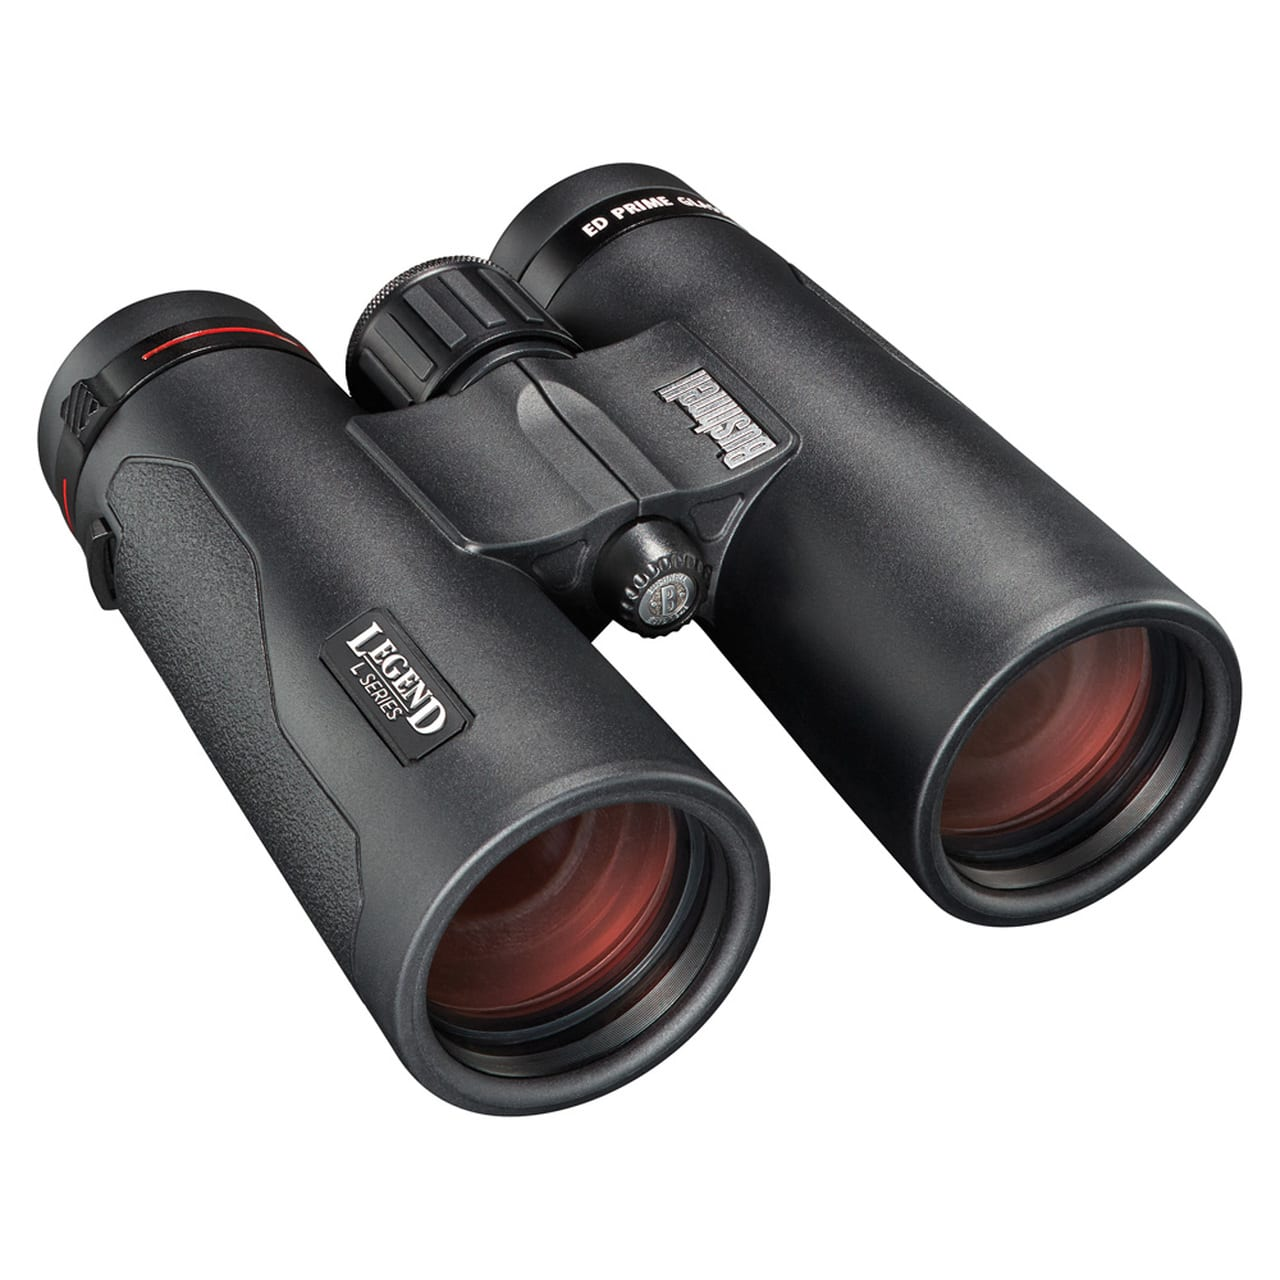 Bushnell Legend L-Series 10x42mm Binoculars $103.30